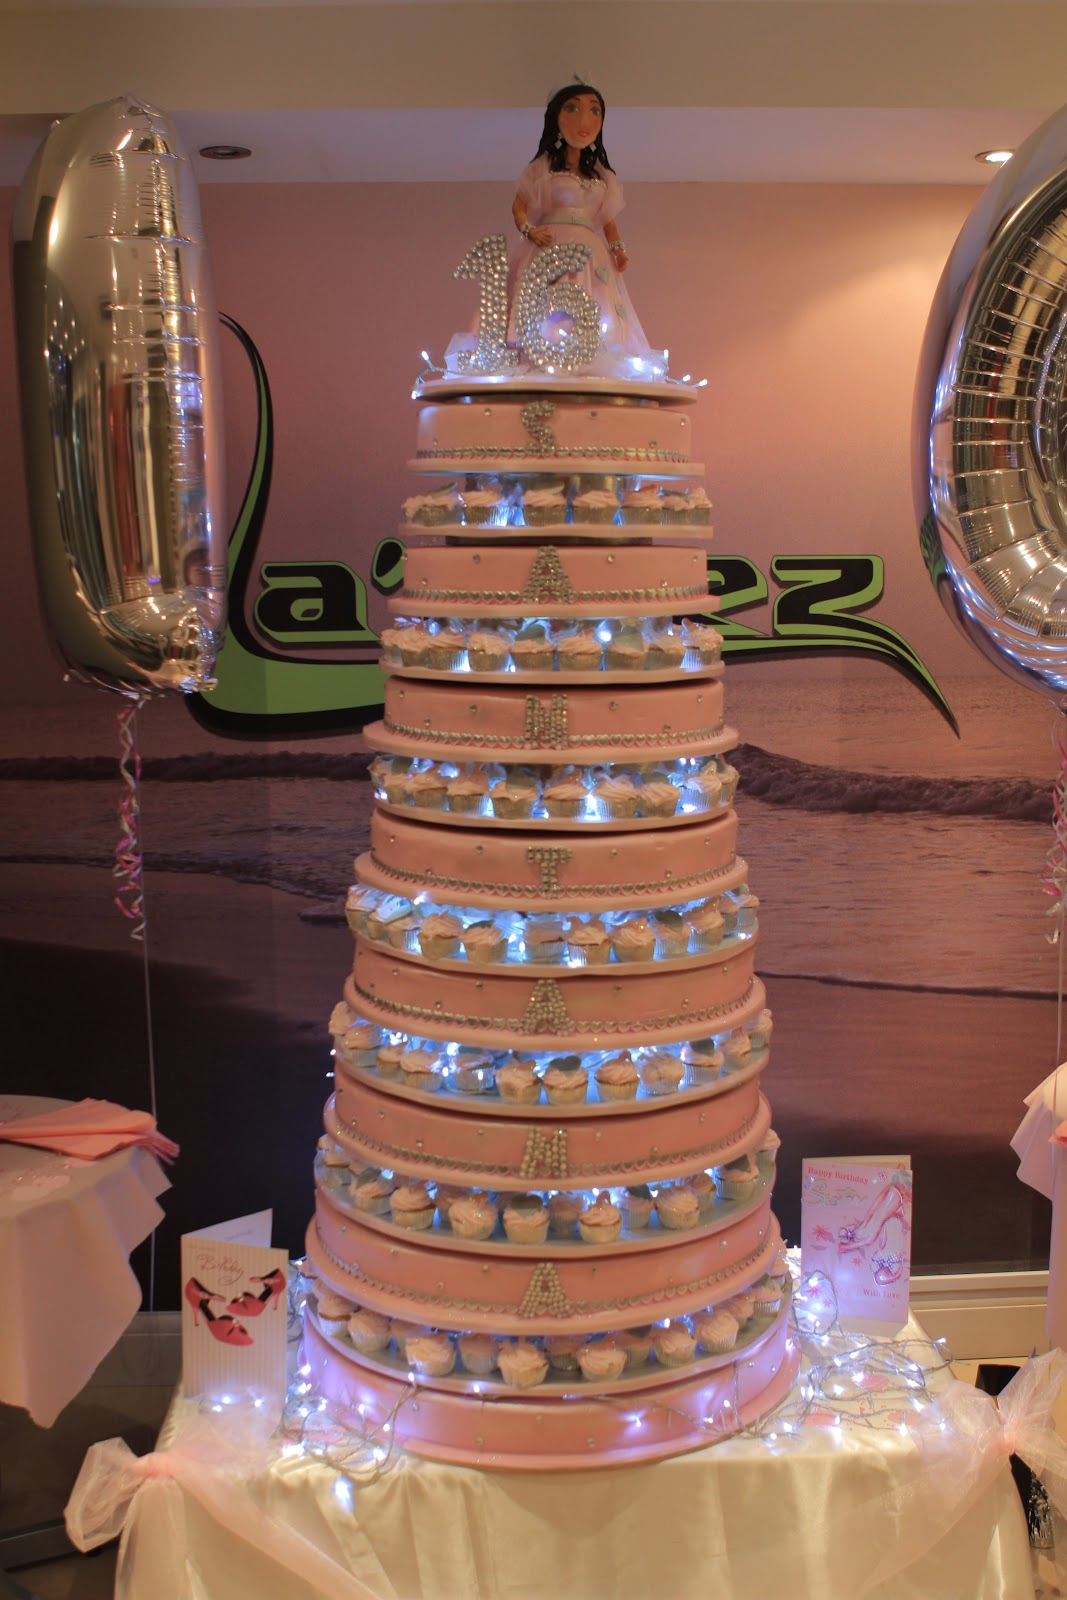 Big Wedding Cake Images : Josie s Juice:  Big Fat Gypsy Weddings : Season Two - On ...